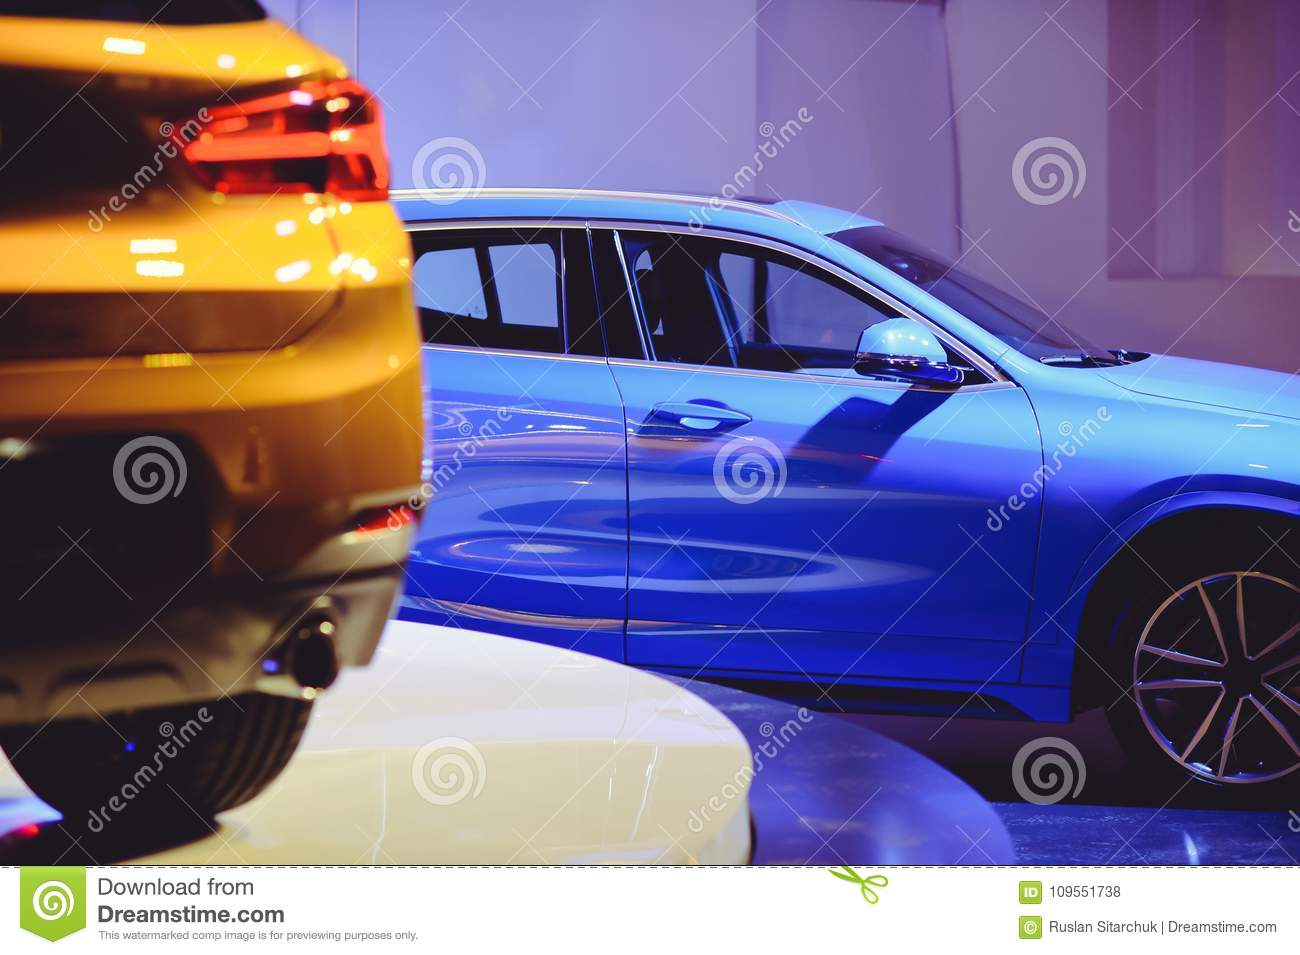 Fashionable bright auto show A number of new cars parked in the car dealers` warehouse, modern design of the premises